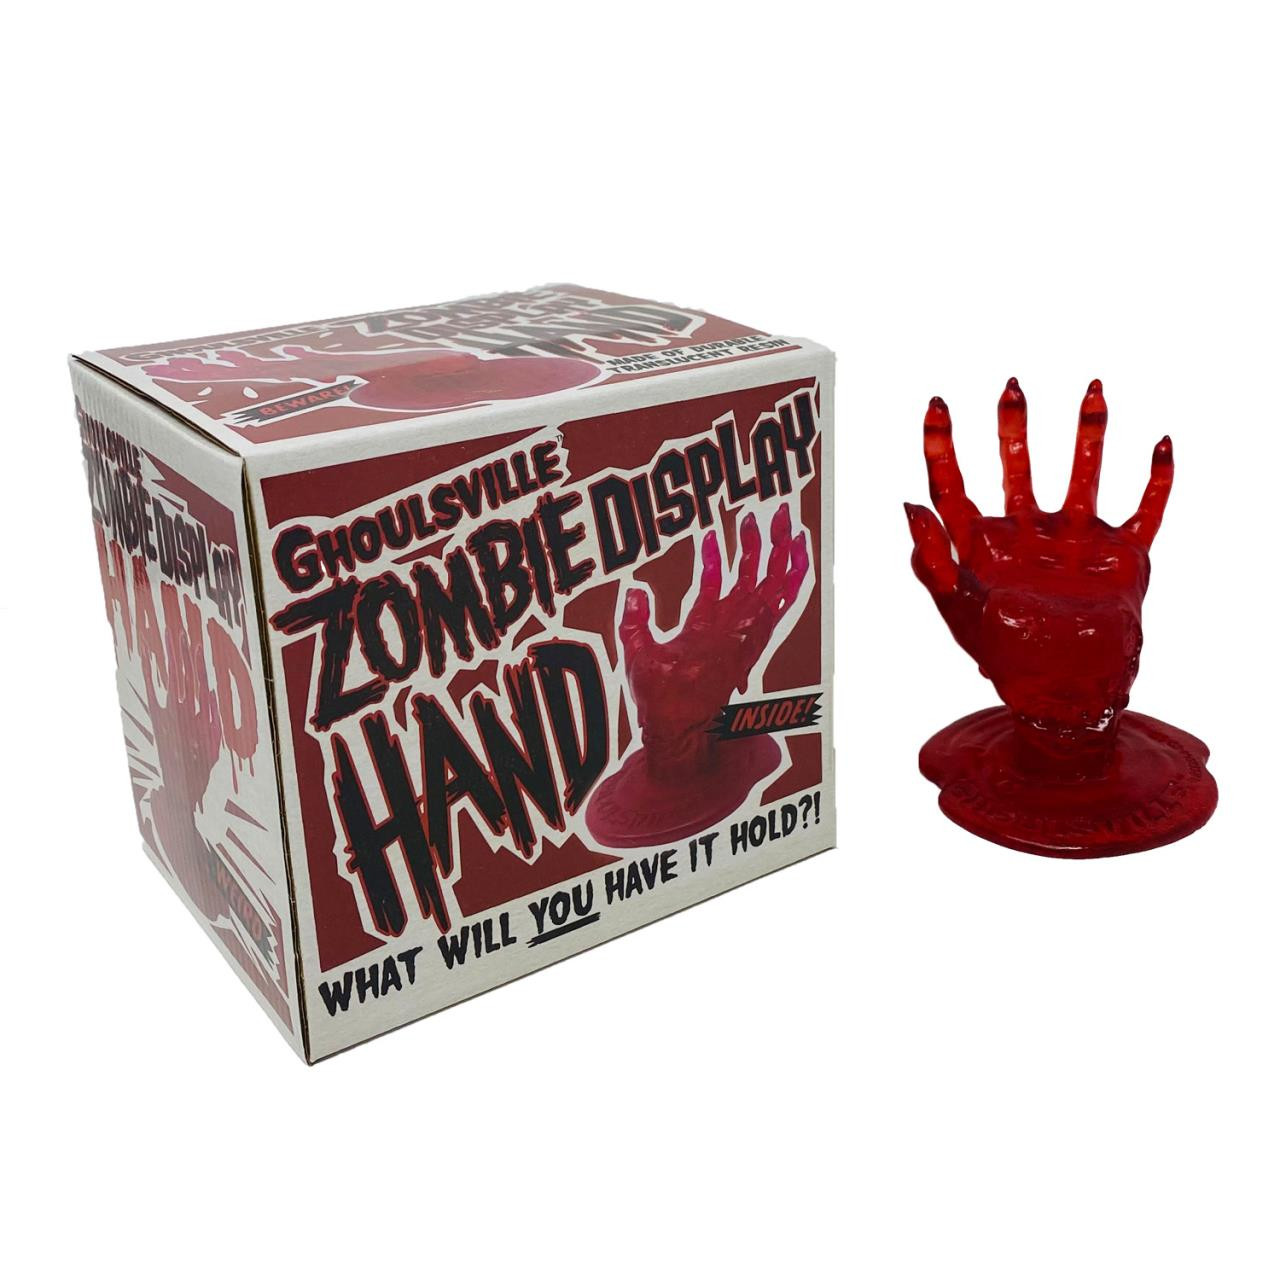 Blood Red Zombie Display Hand* - 0659682810065